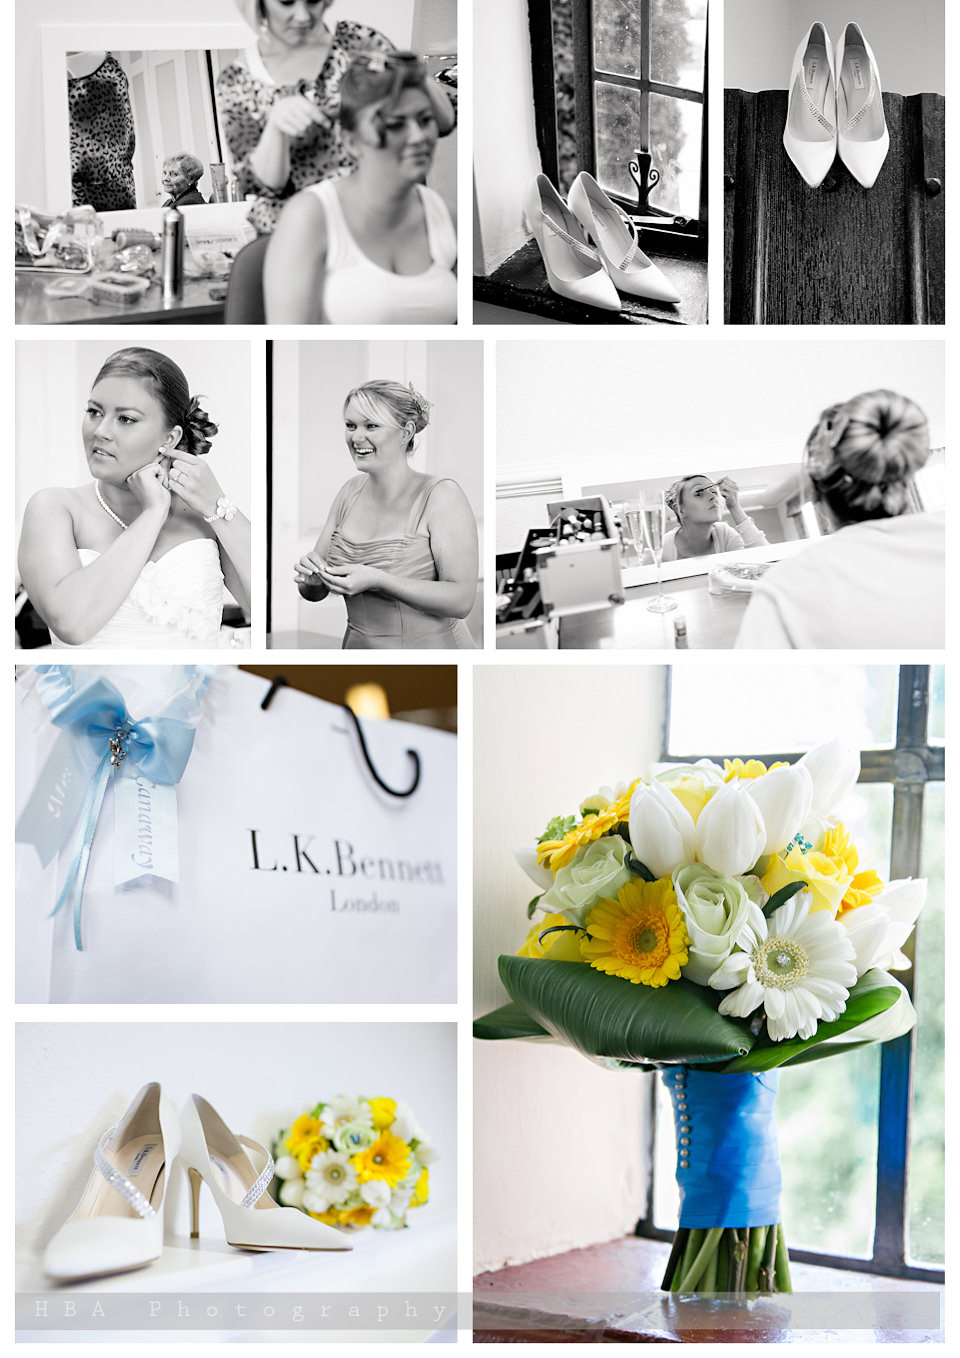 The wedding of Sam & Alan at New Place, Southampton. By contemporary photographers HBA Photography. Photos of the girls getting ready